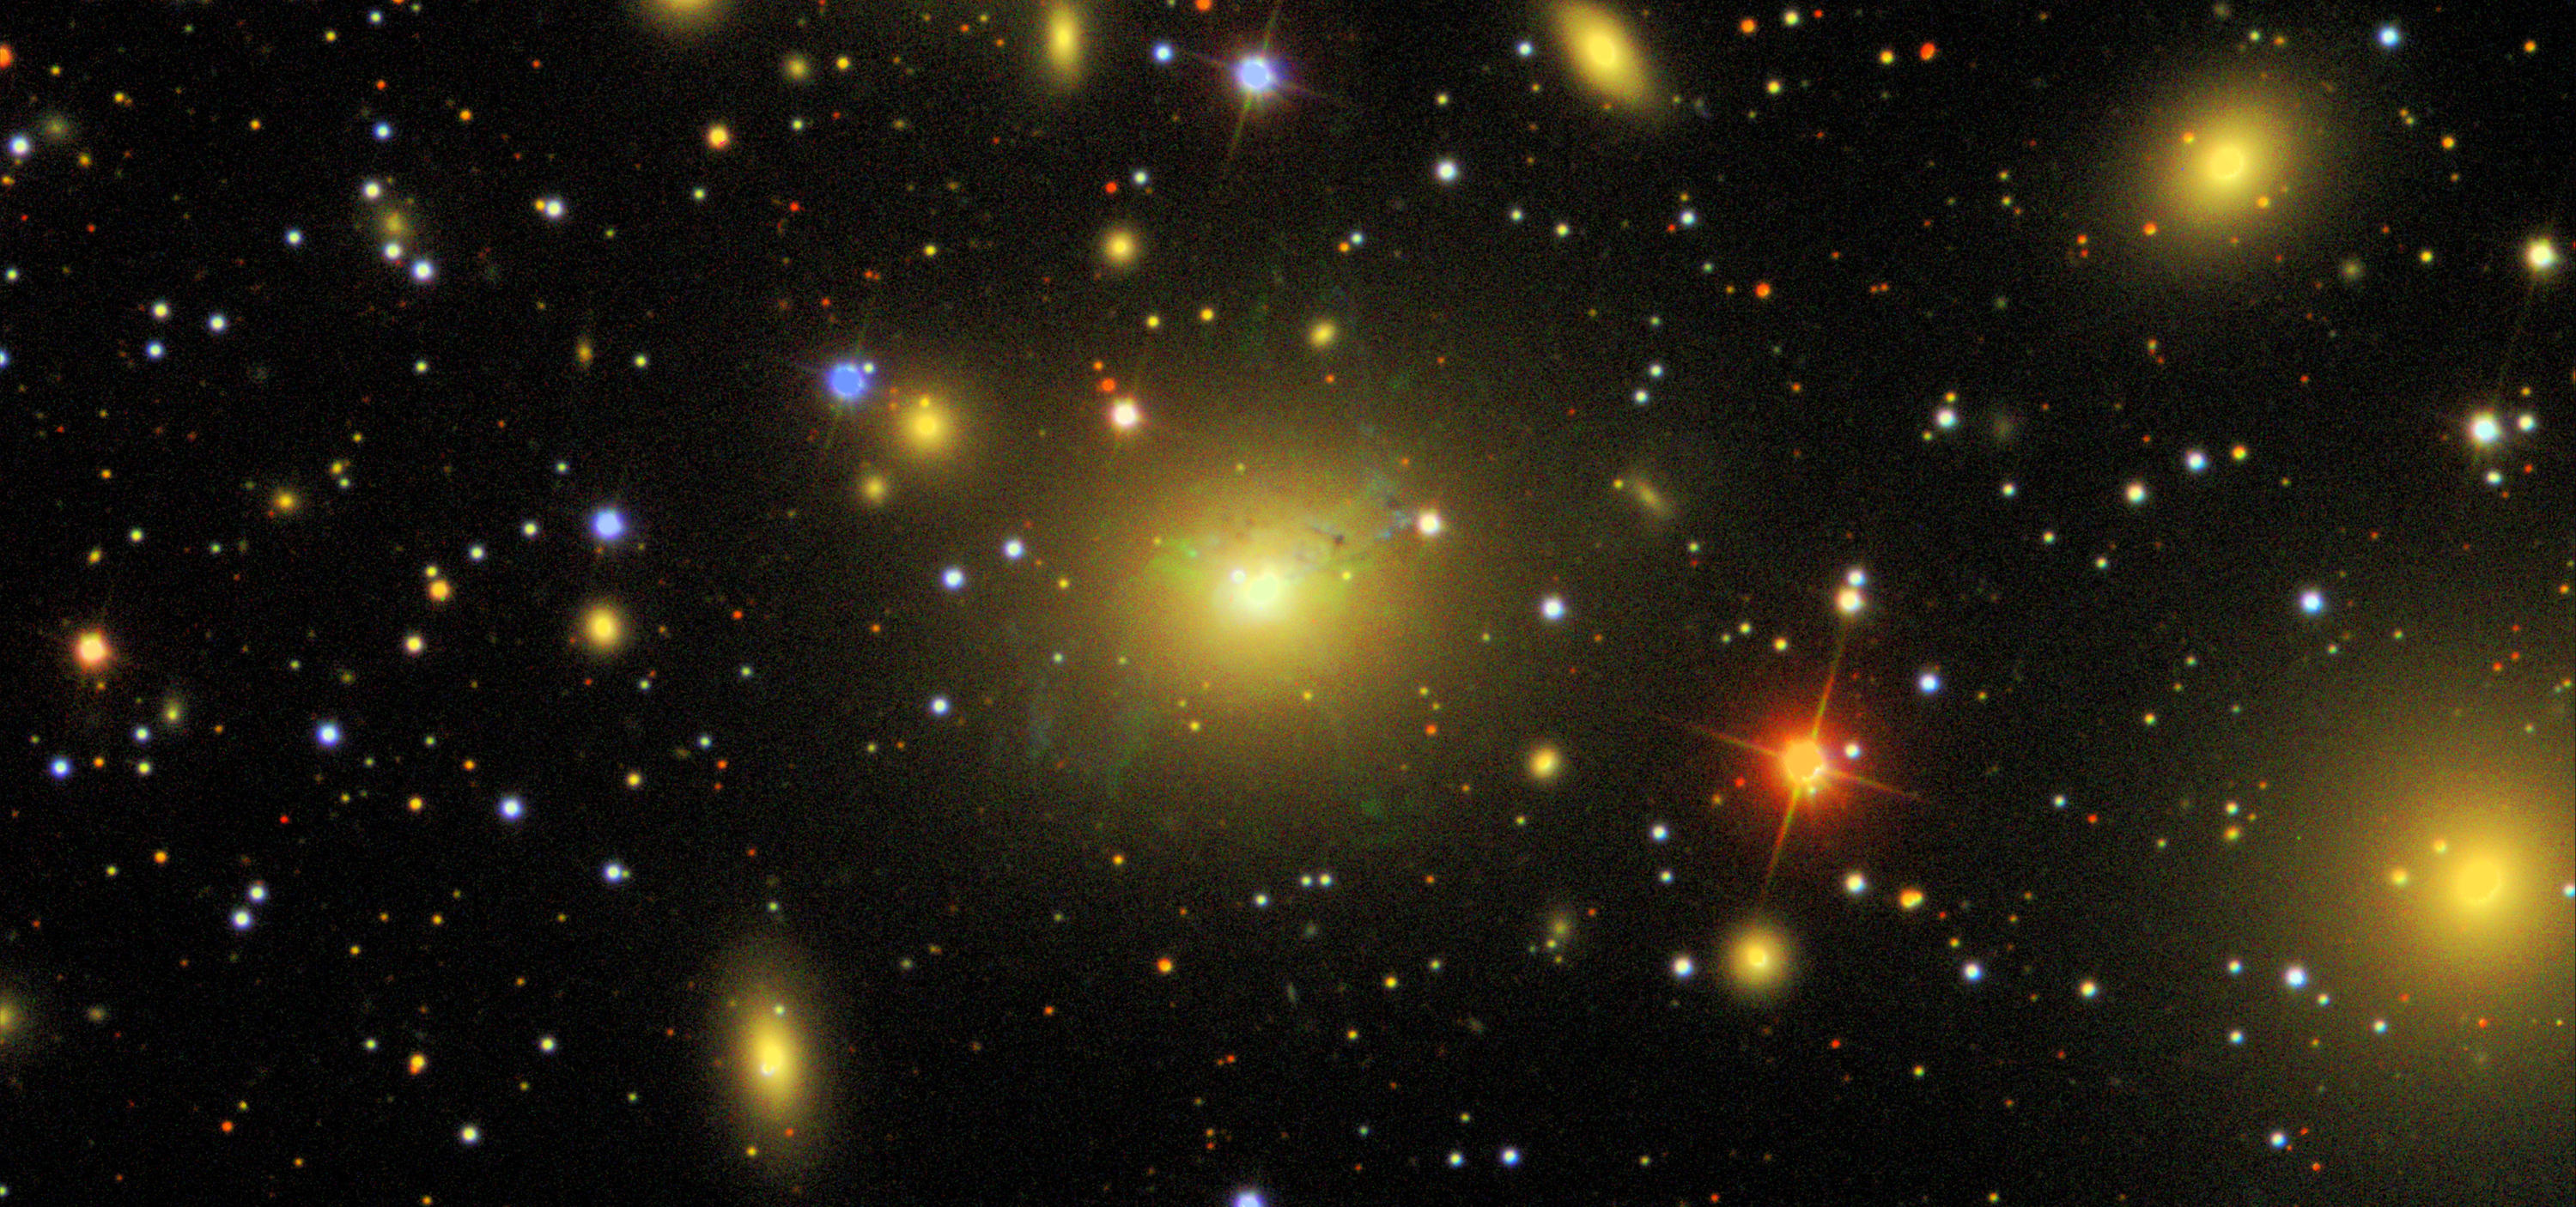 The Perseus galaxy cluster, located about 240 million light-years away.